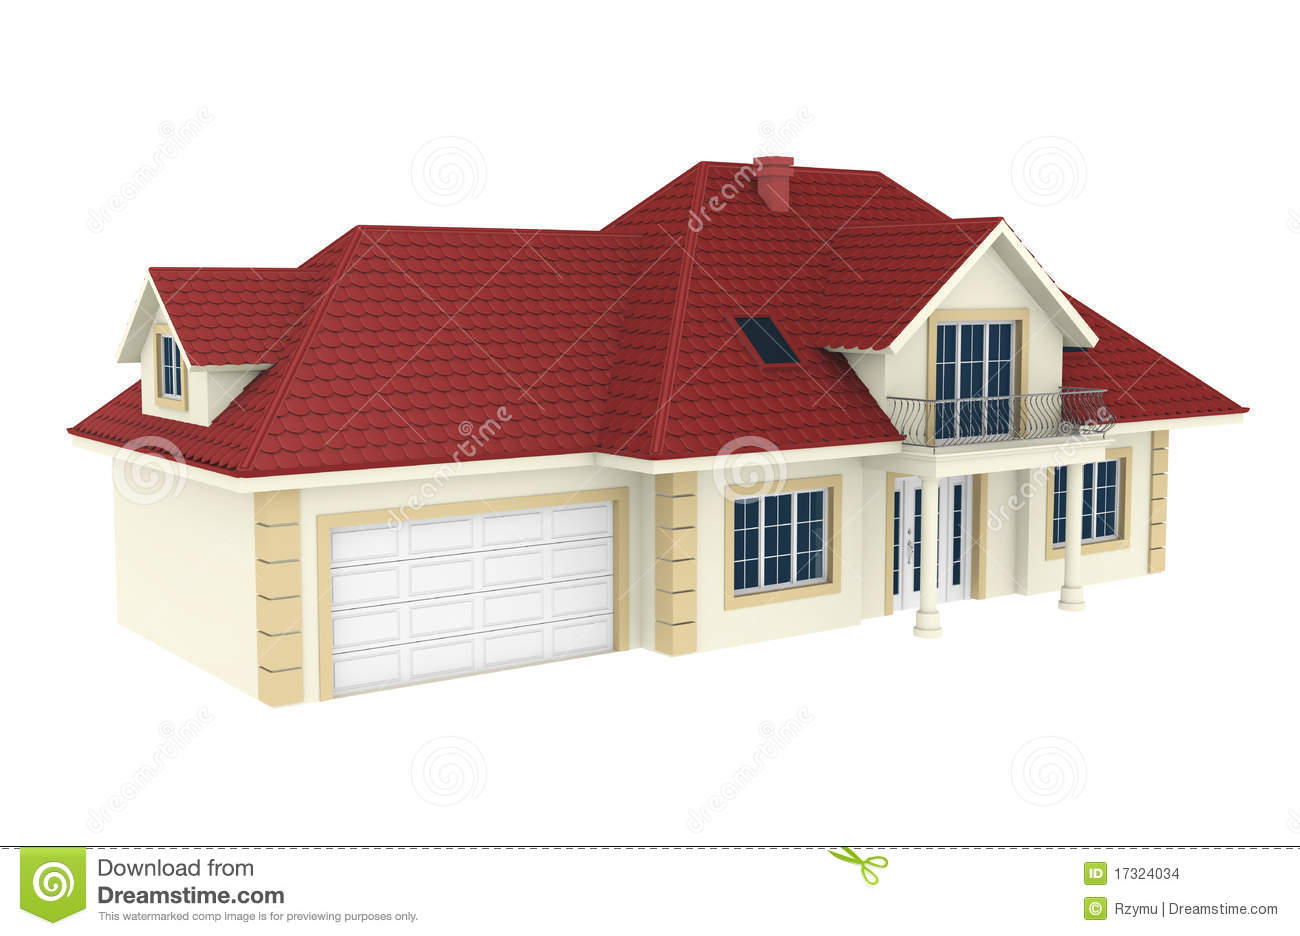 4543170376 additionally Darkness moreover 346355027563899077 as well Tap also Parkhurst Prison Escape Plan Foiled. on detailed house plans